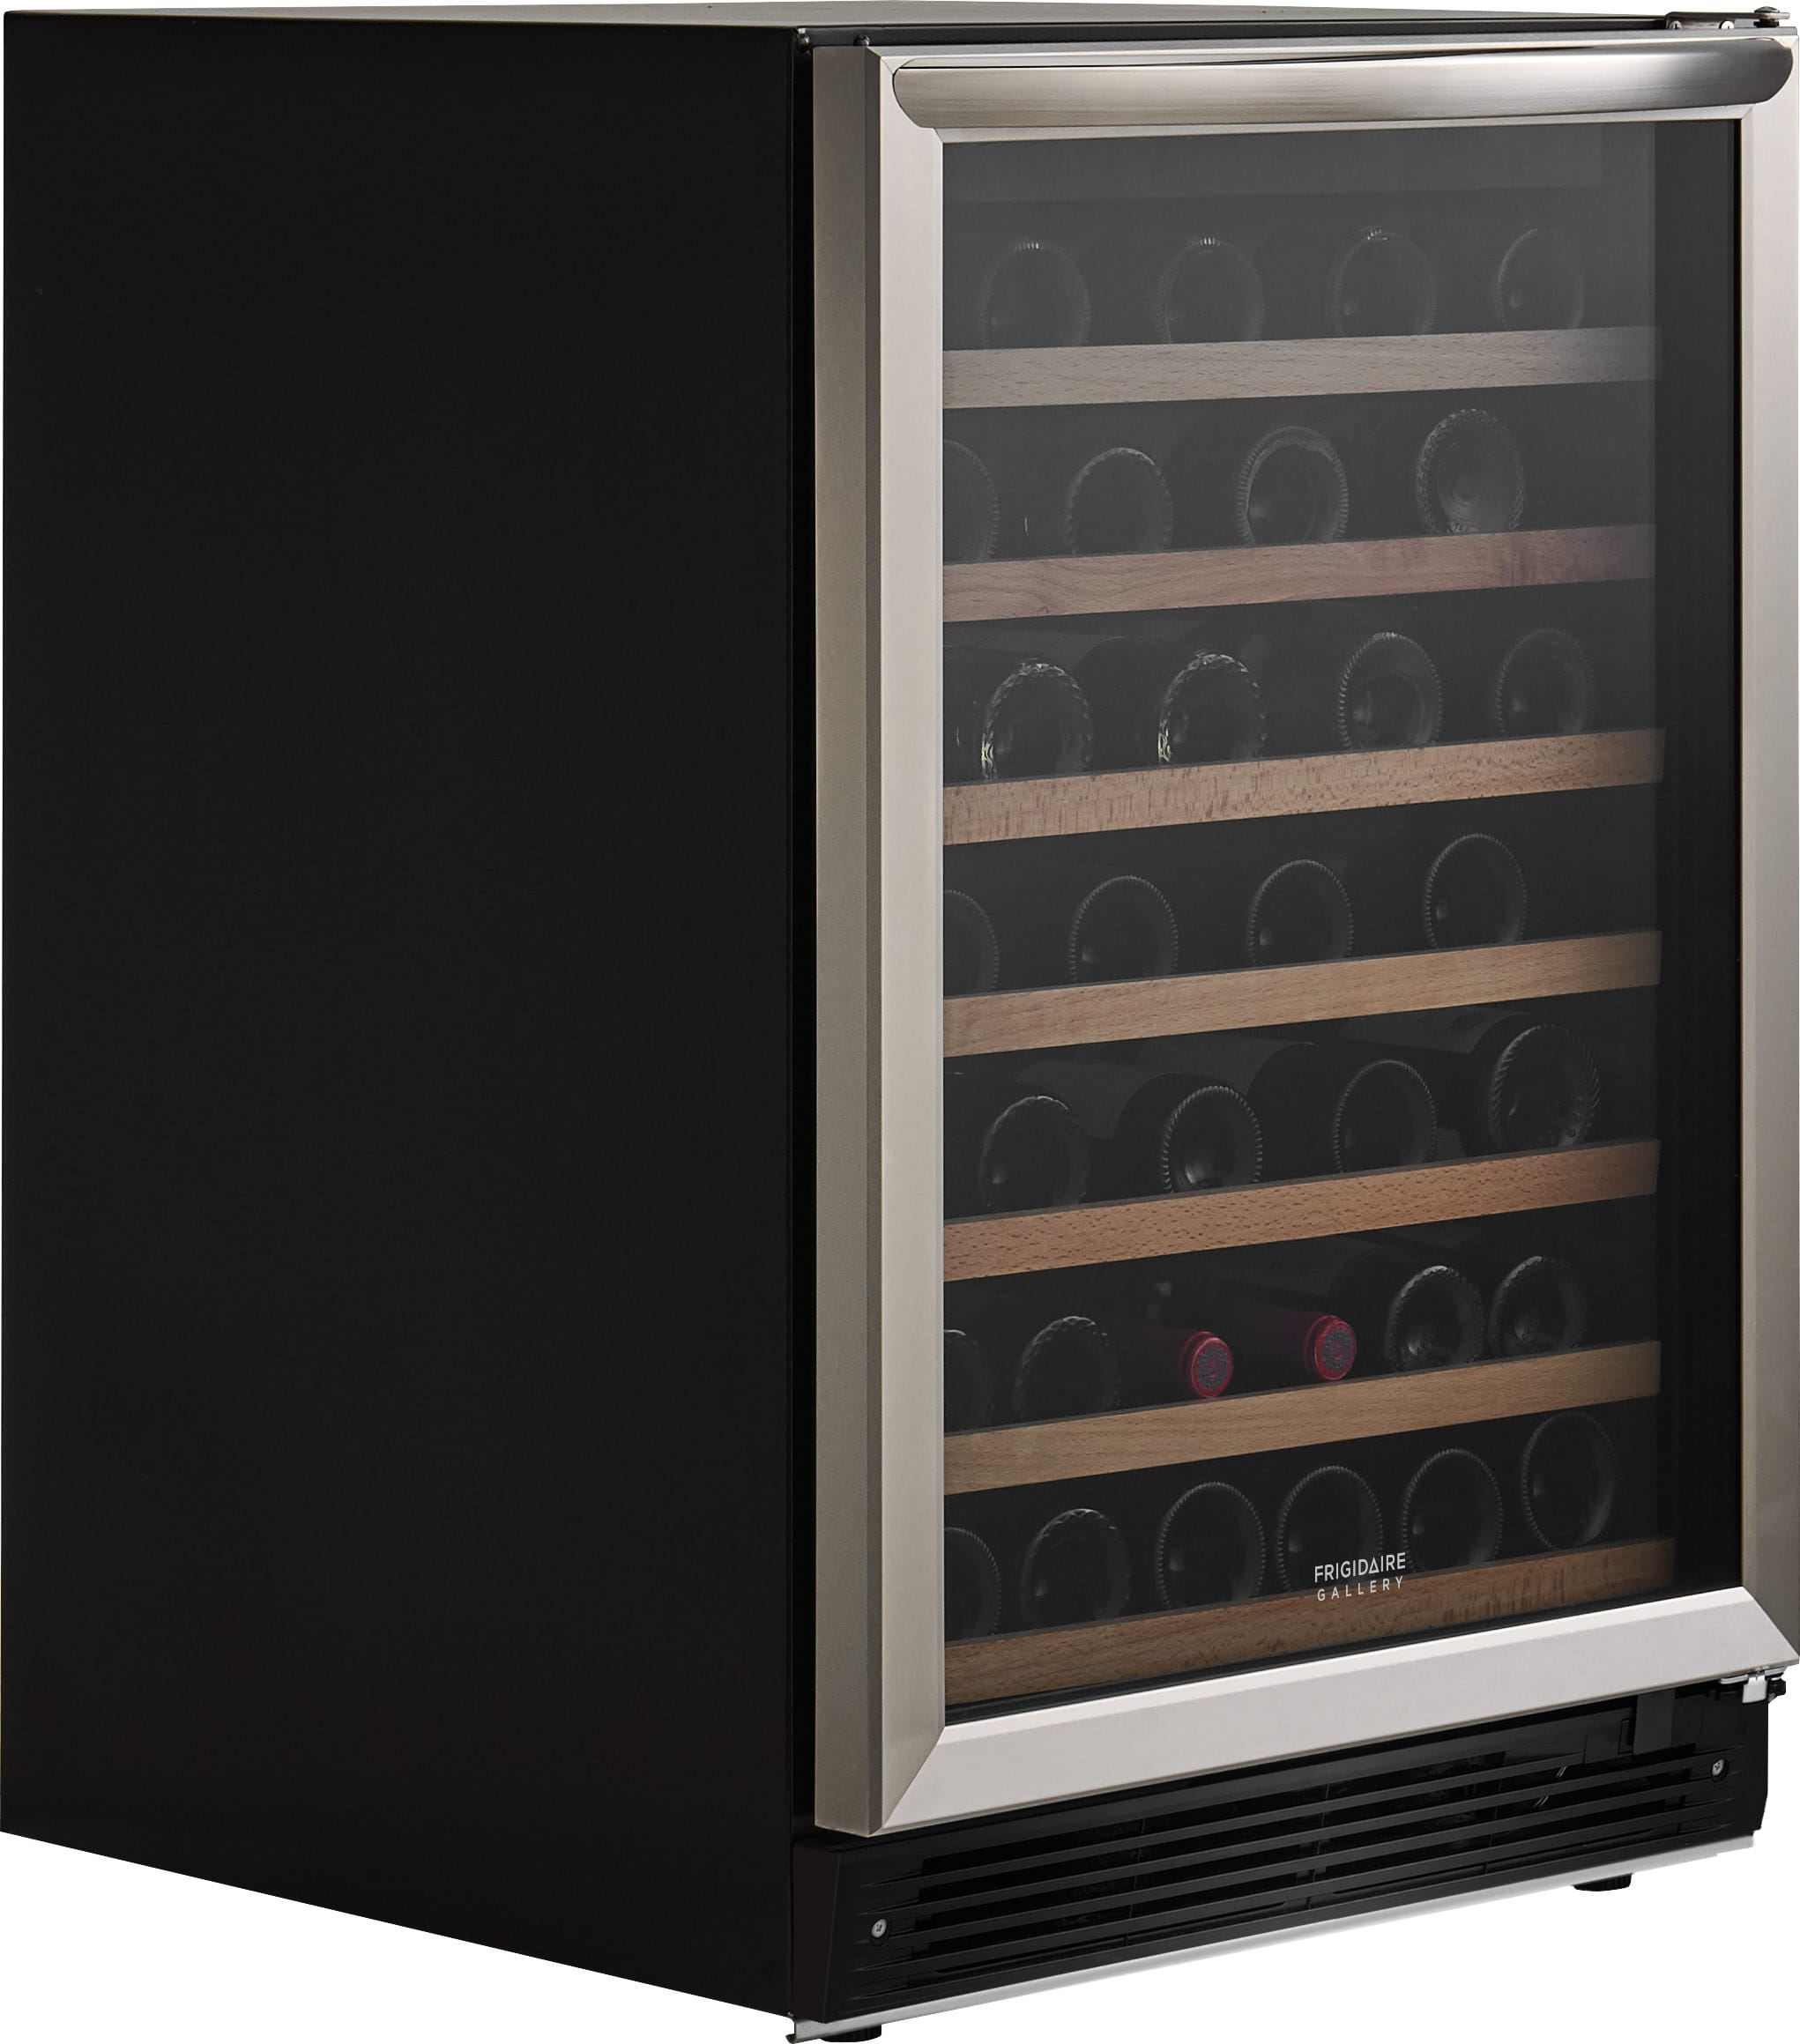 Model: FGWC5233TS | Frigidaire Gallery 52 Bottle Wine Cooler